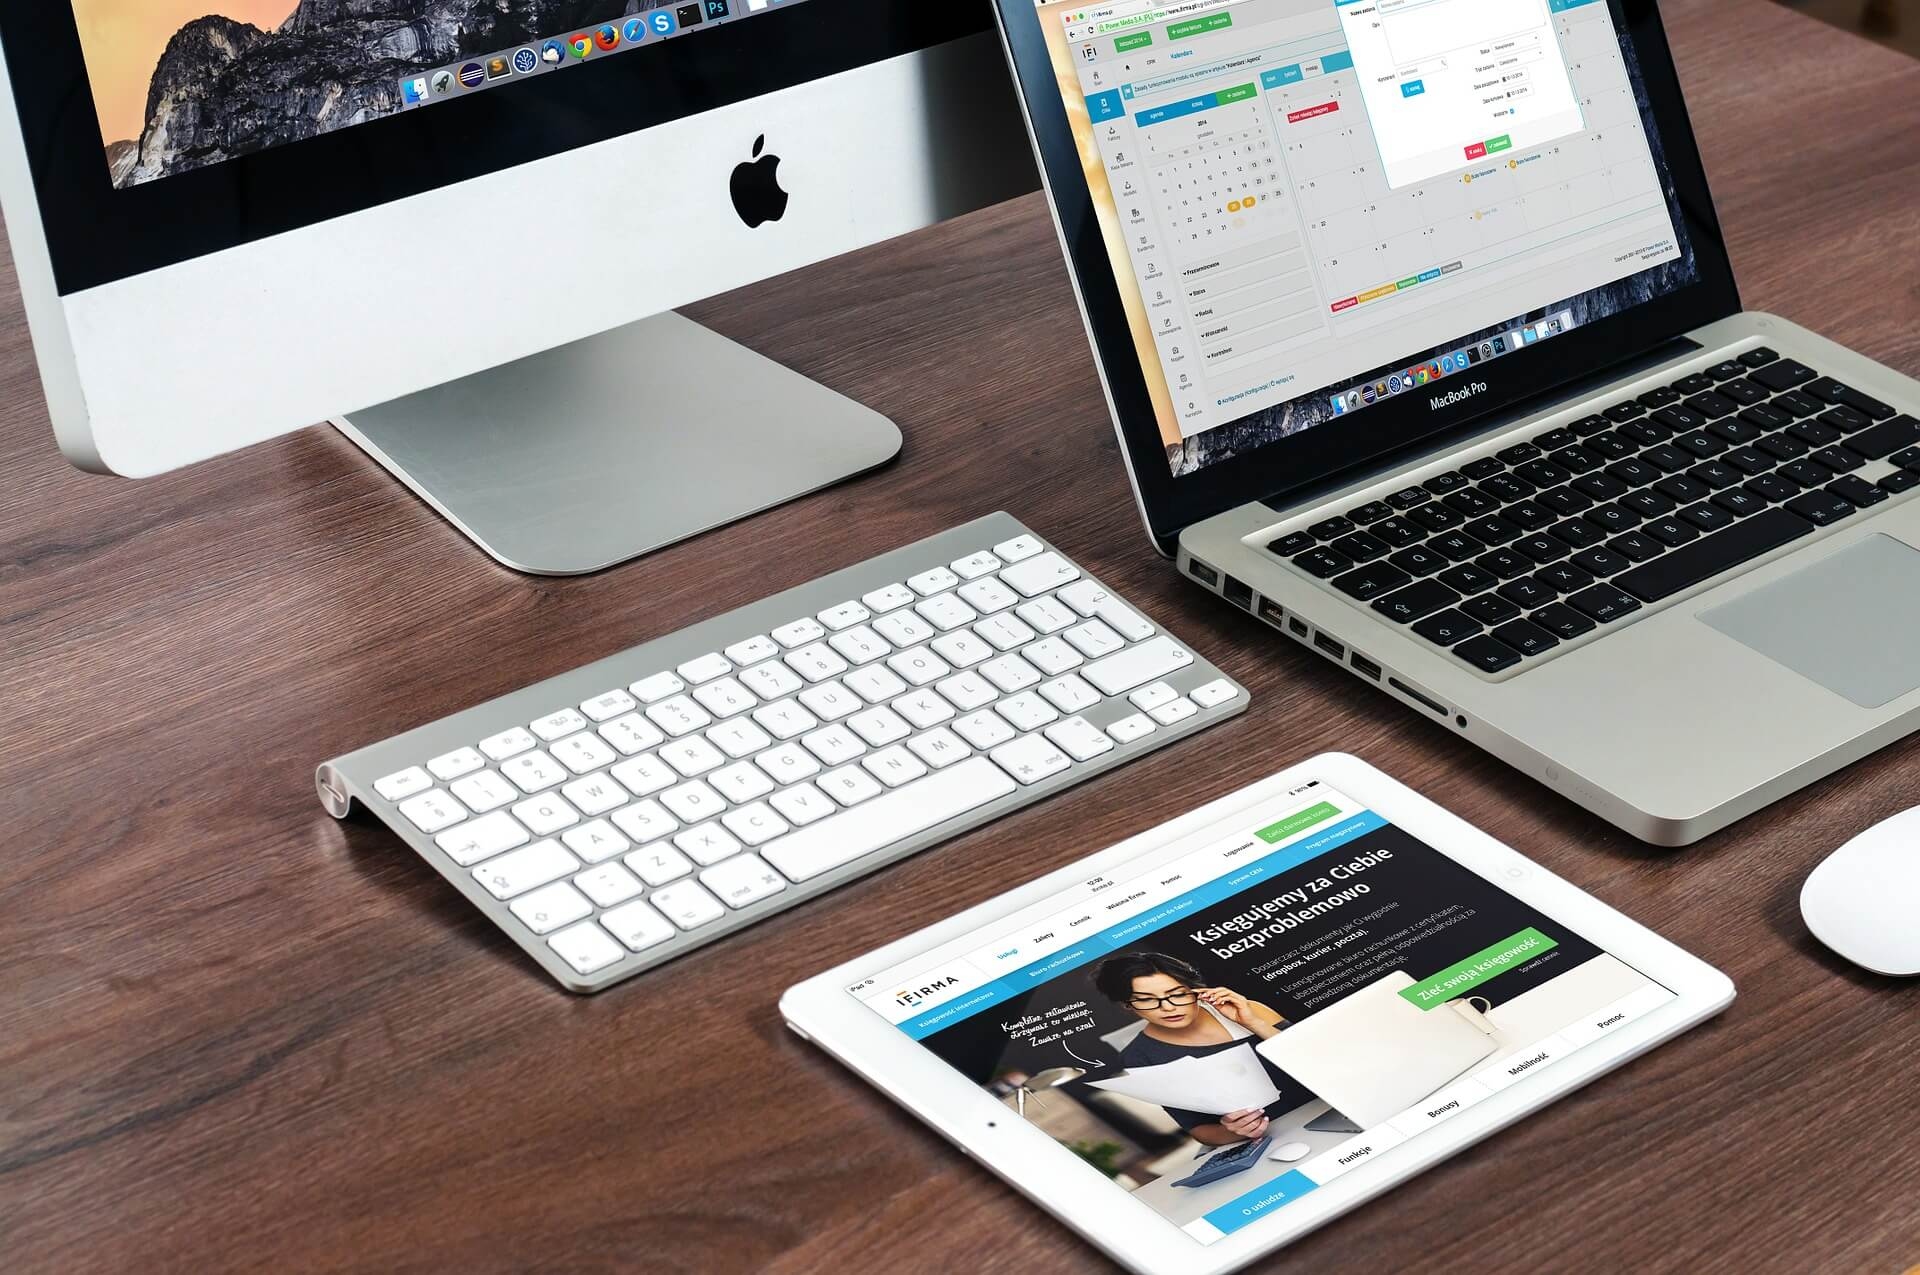 Apple: macbook, imac, ipad can be used for small business